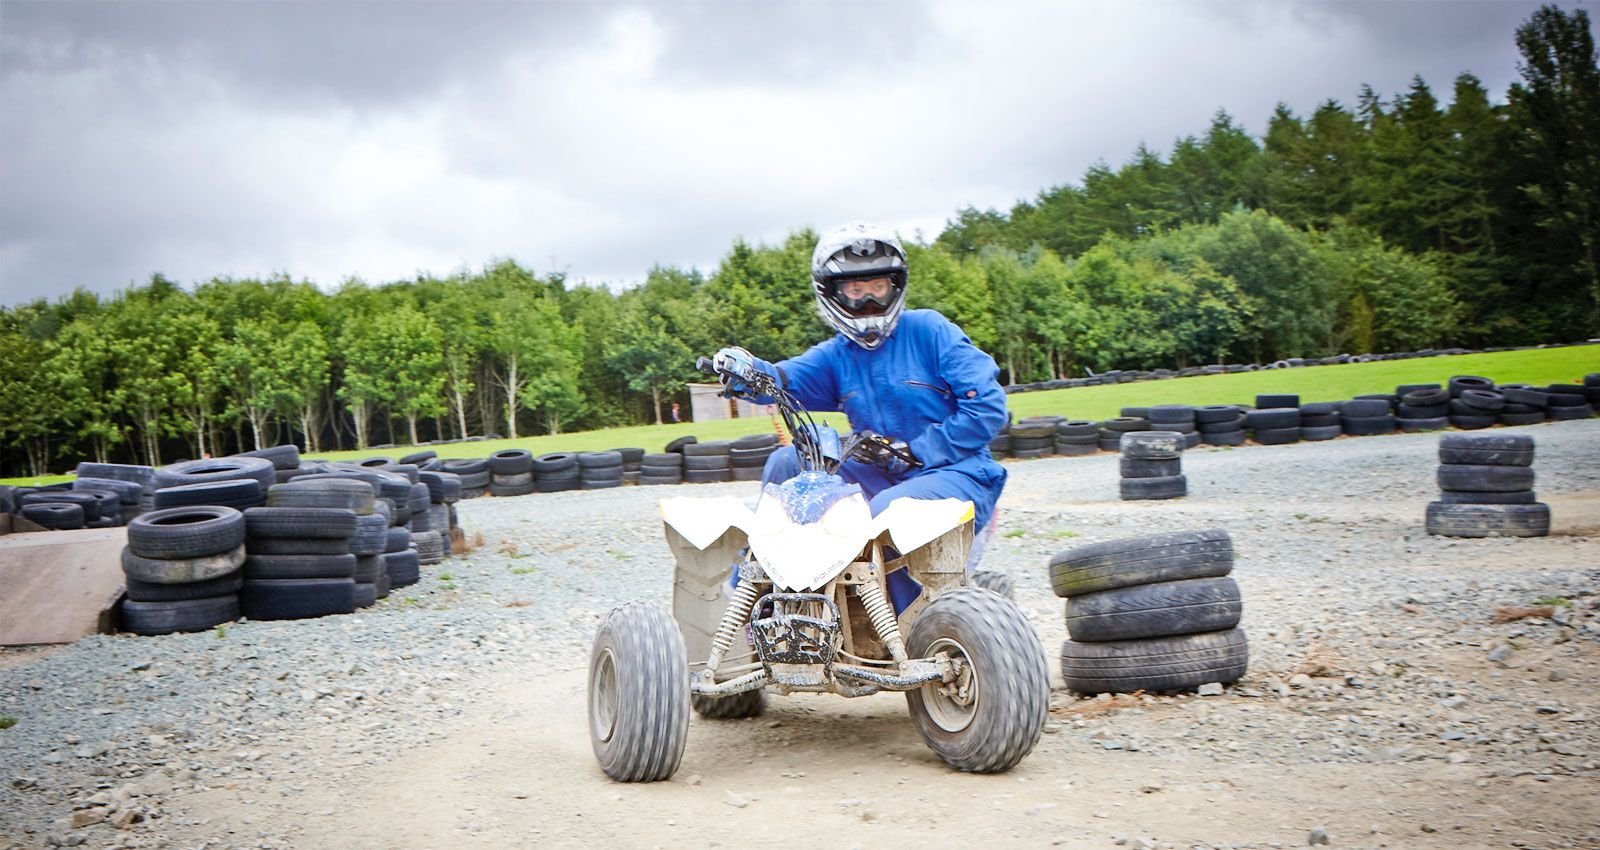 PGL Adventure Holidays - Specialist Holidays for 7-17 year olds across the UK and France - Action and Adventure - Motorsports